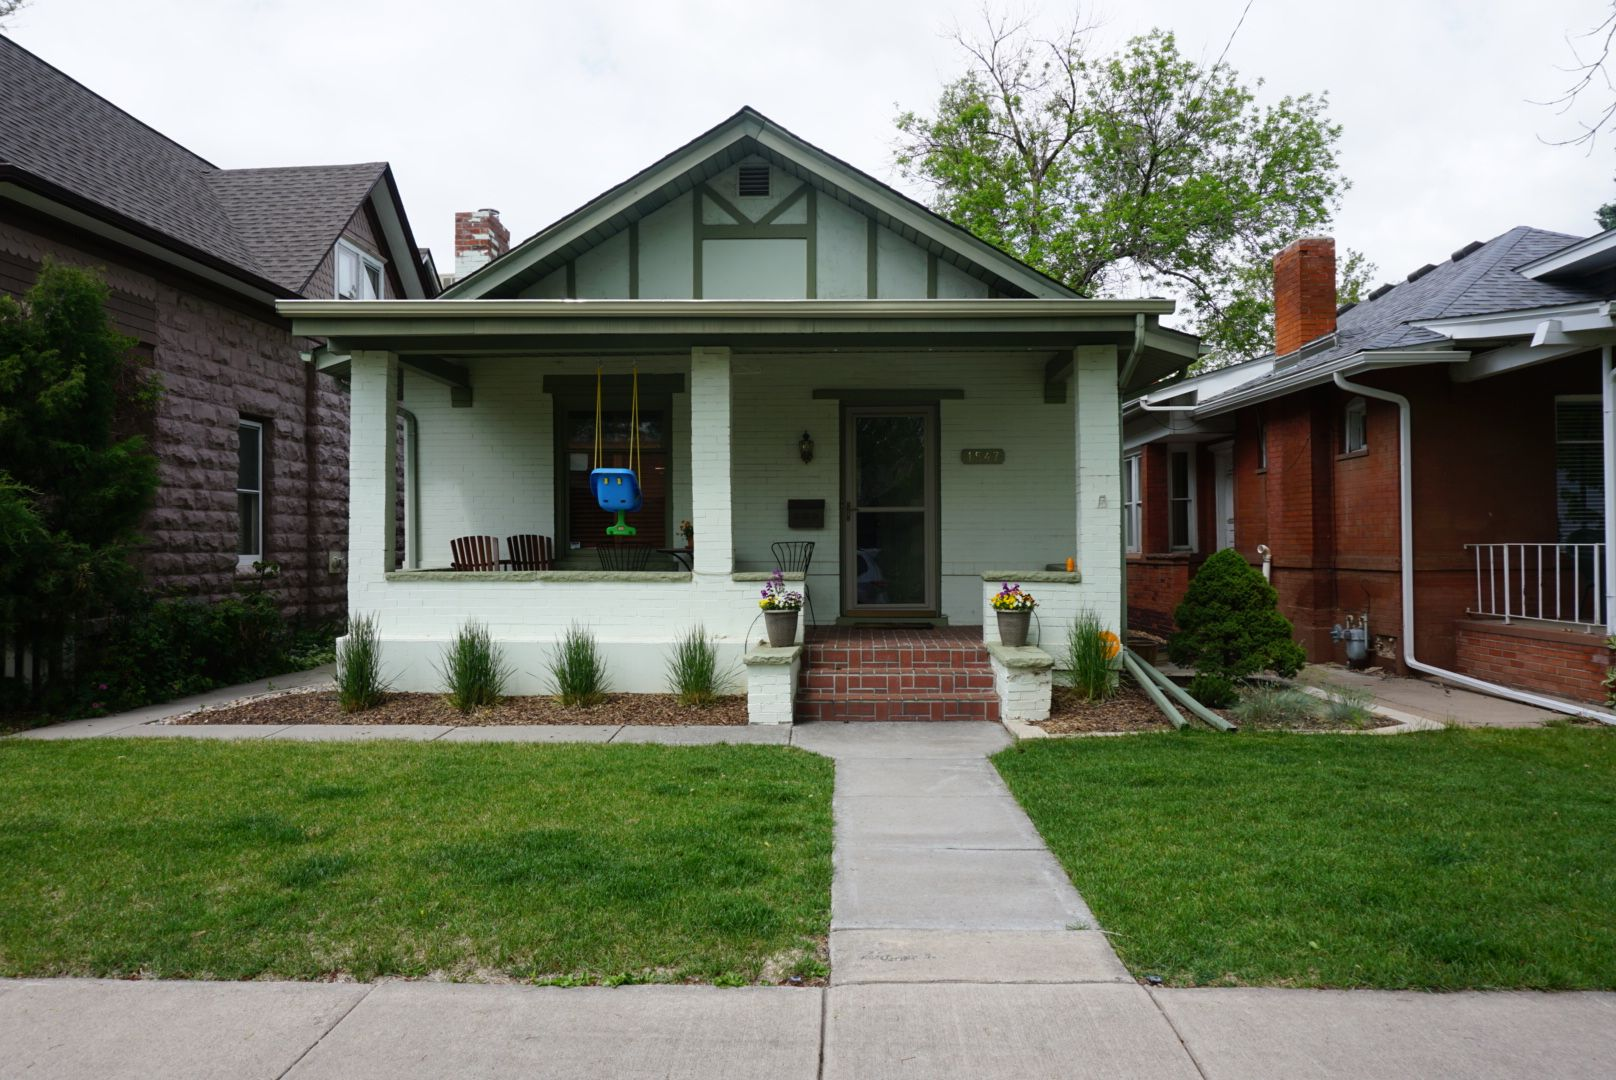 2 Bedroom Houses For Rent In Denver Renting A House 2 Bedroom House House